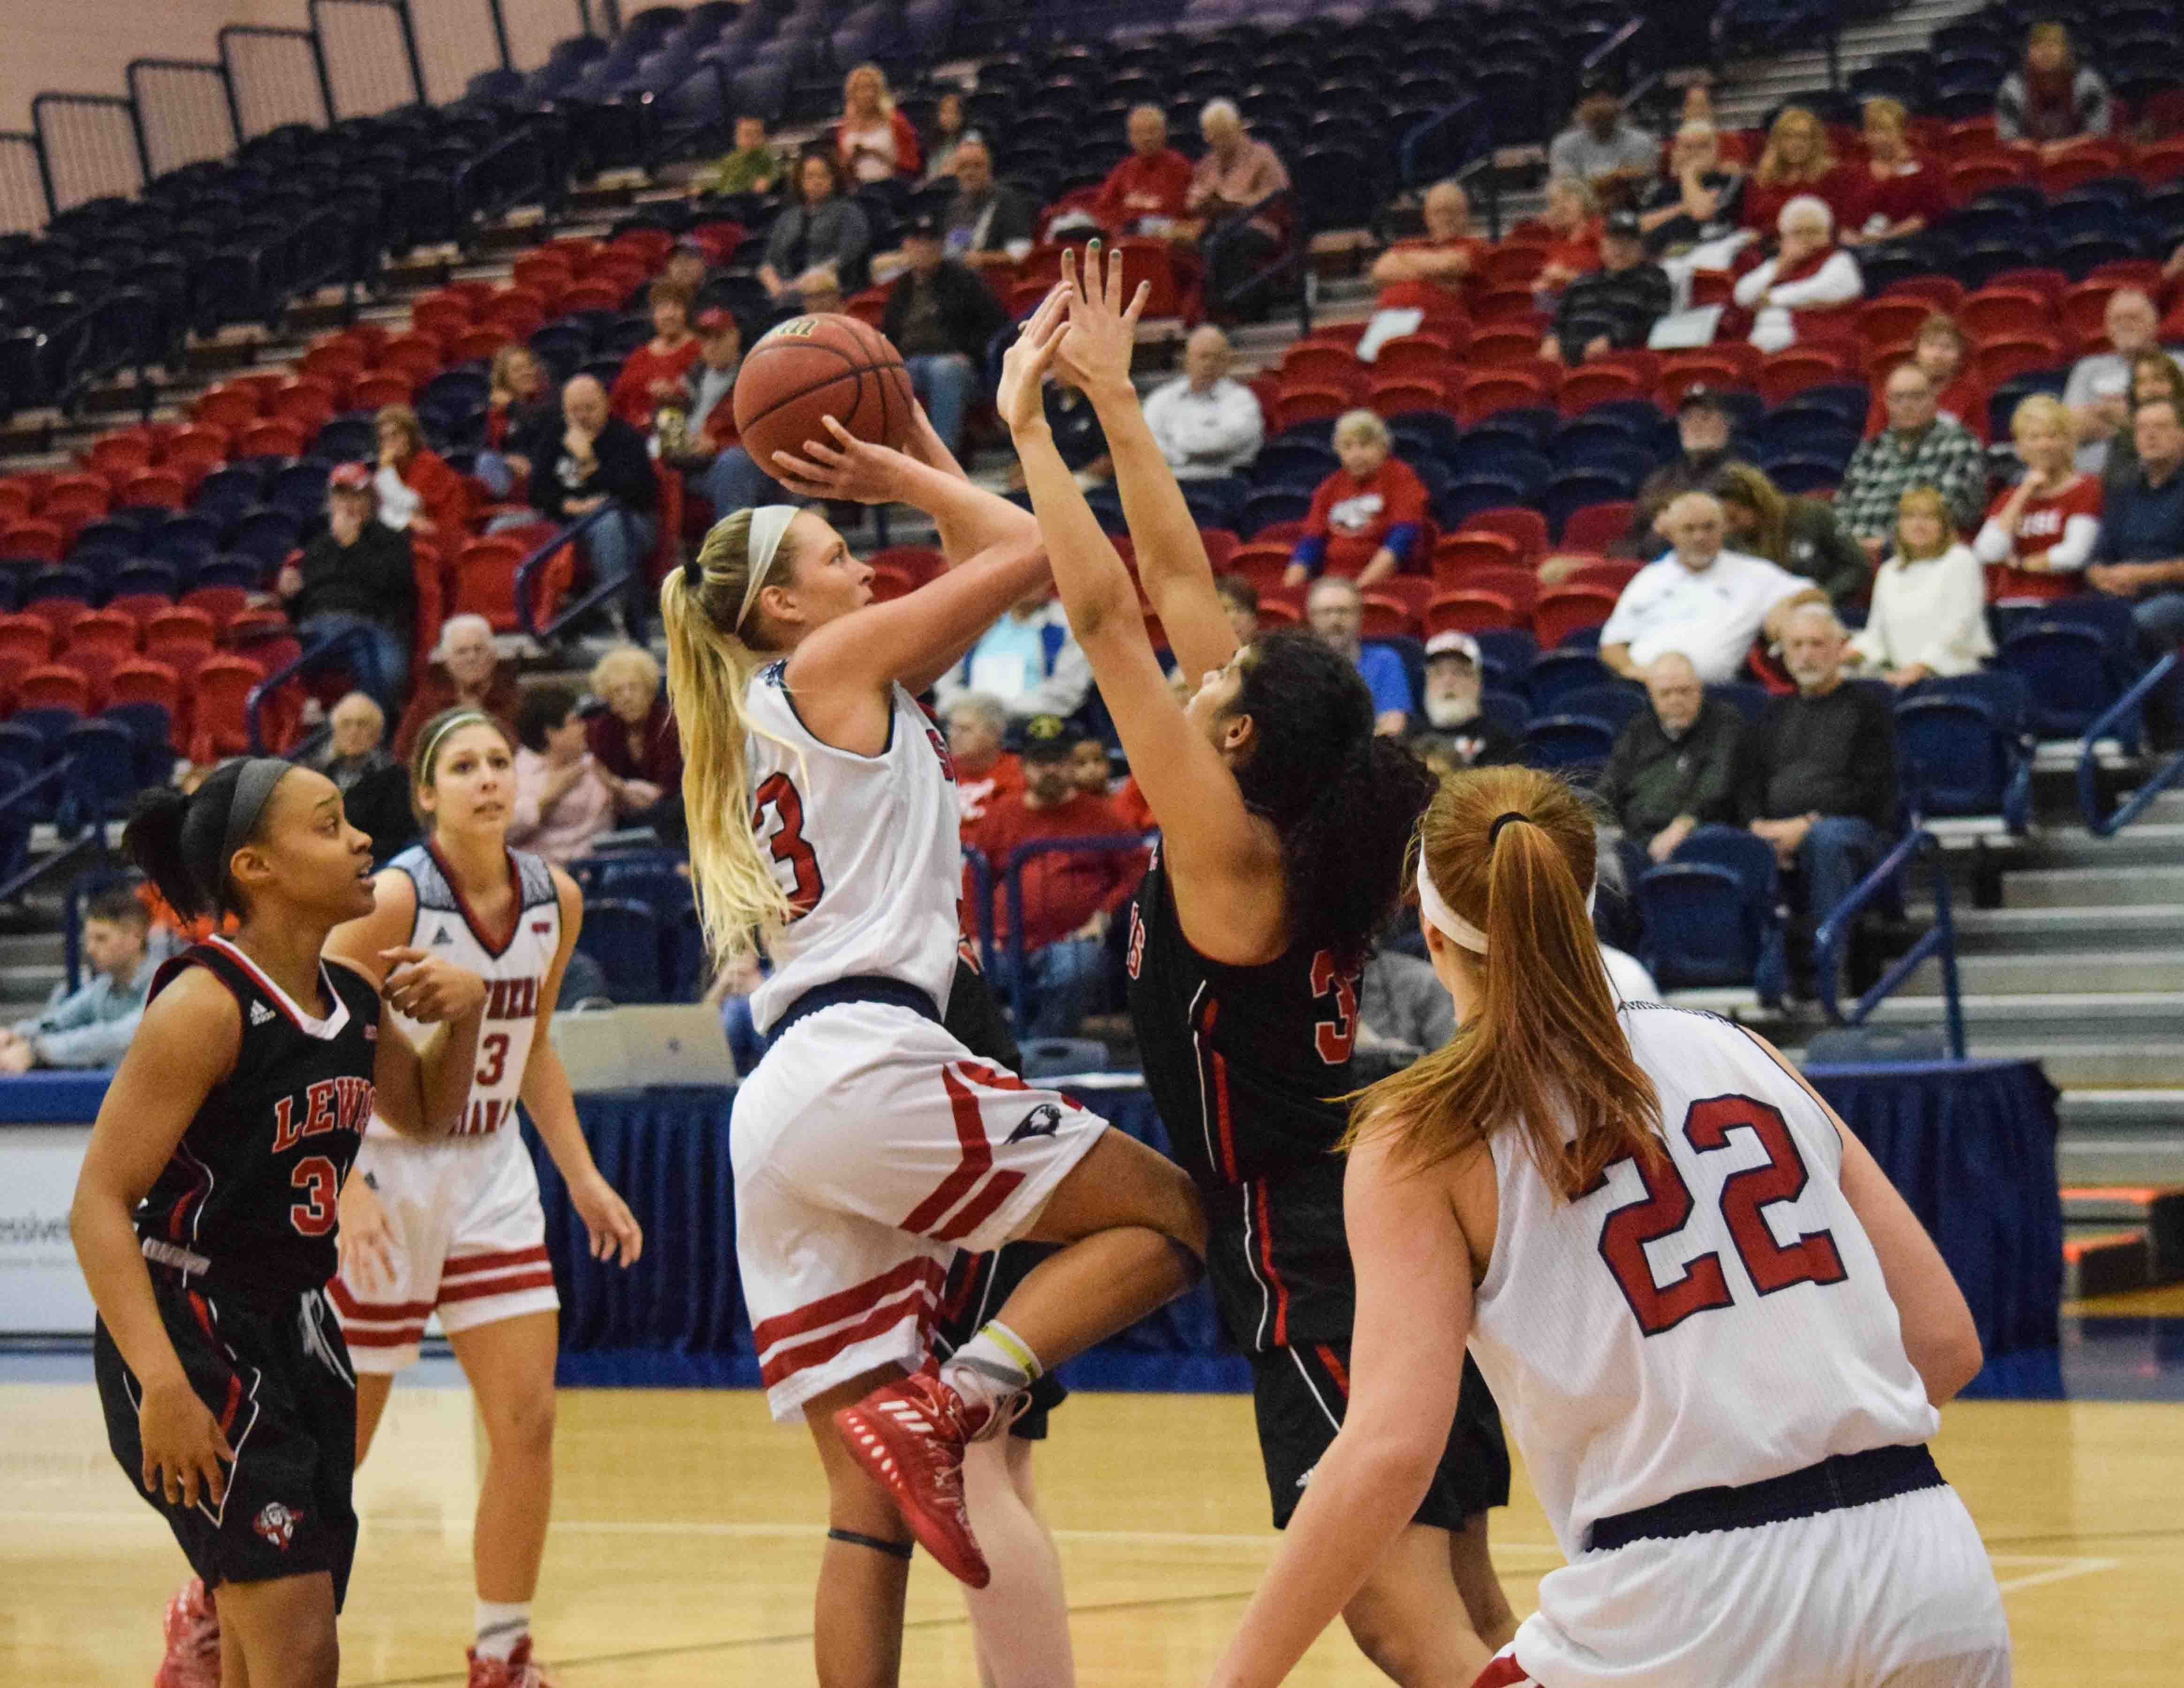 Kaydie+Grooms%2C+a+Junior+Guard%2C+goes+up+for+a+shot+Saturday.